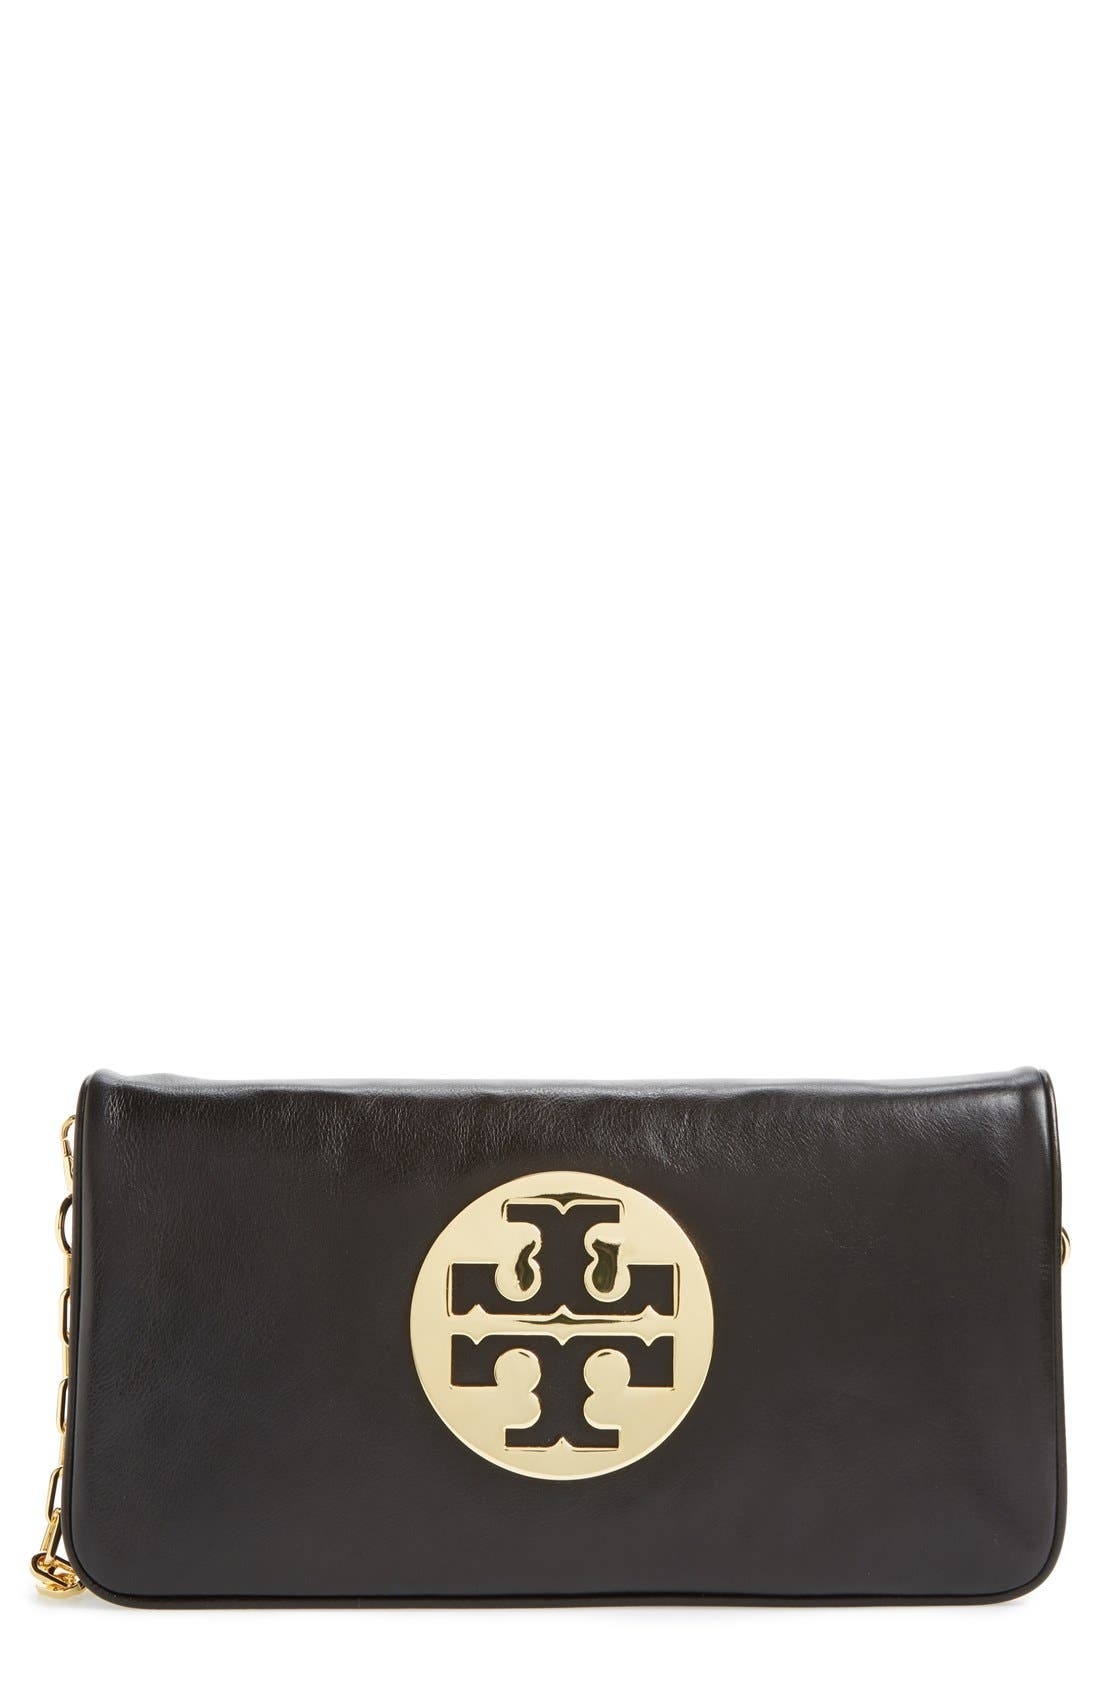 Main Image - Tory Burch 'Reva' Clutch